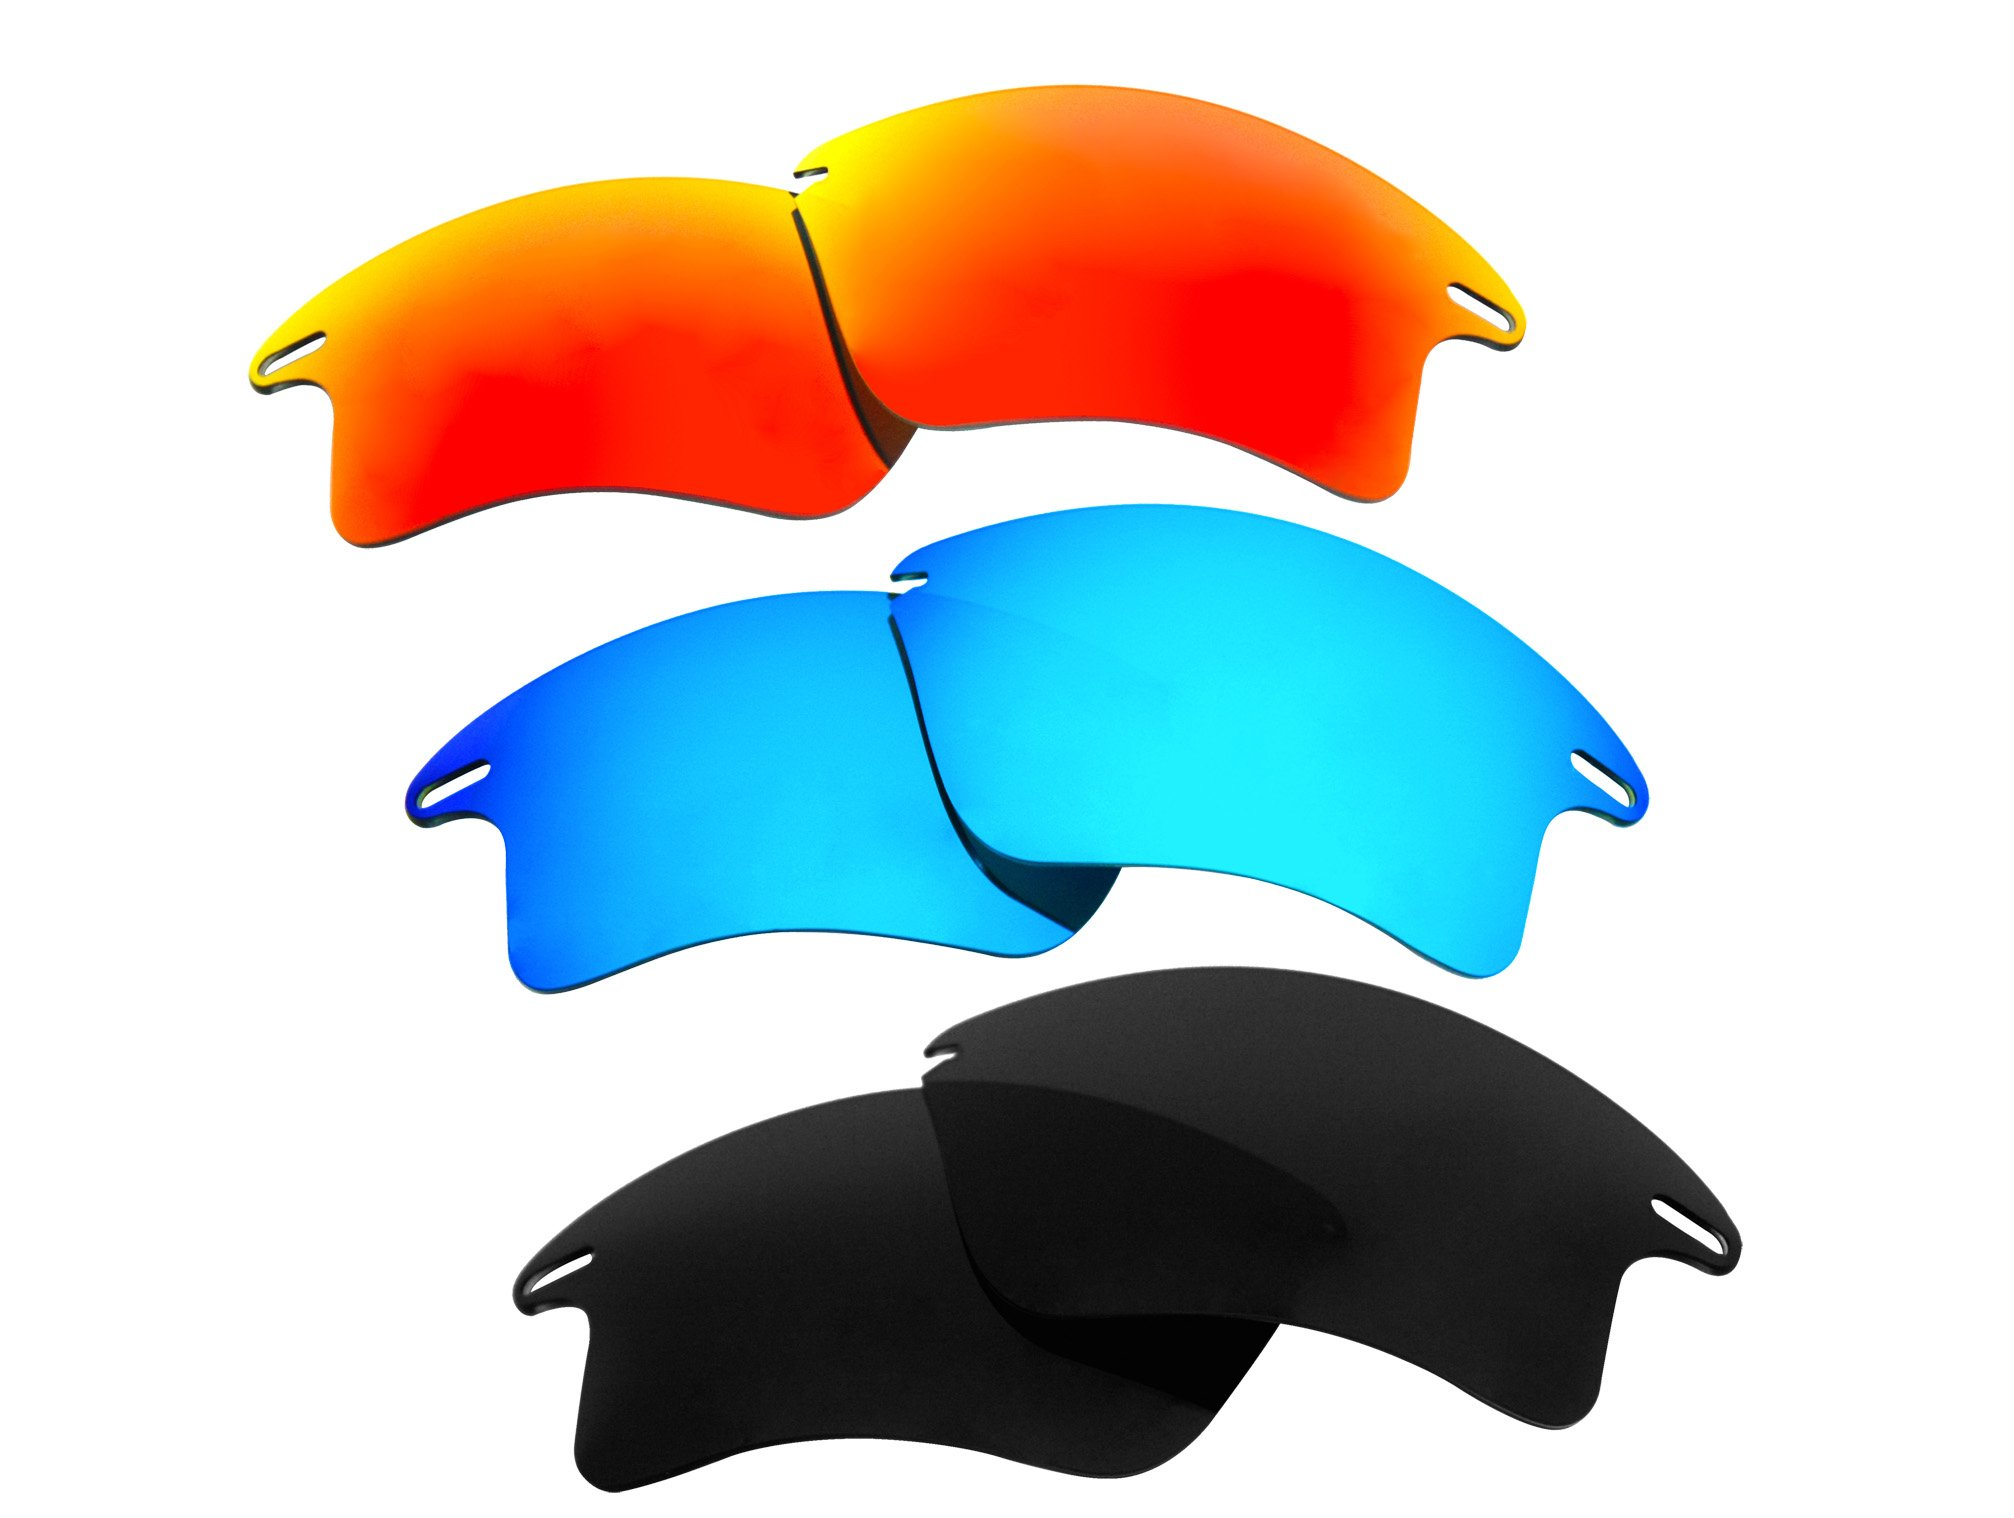 3 Pairs Polarized Replacement Sunglasses Lenses for Oakley Fast Jacket XL with Excellent UV Protection by C&D